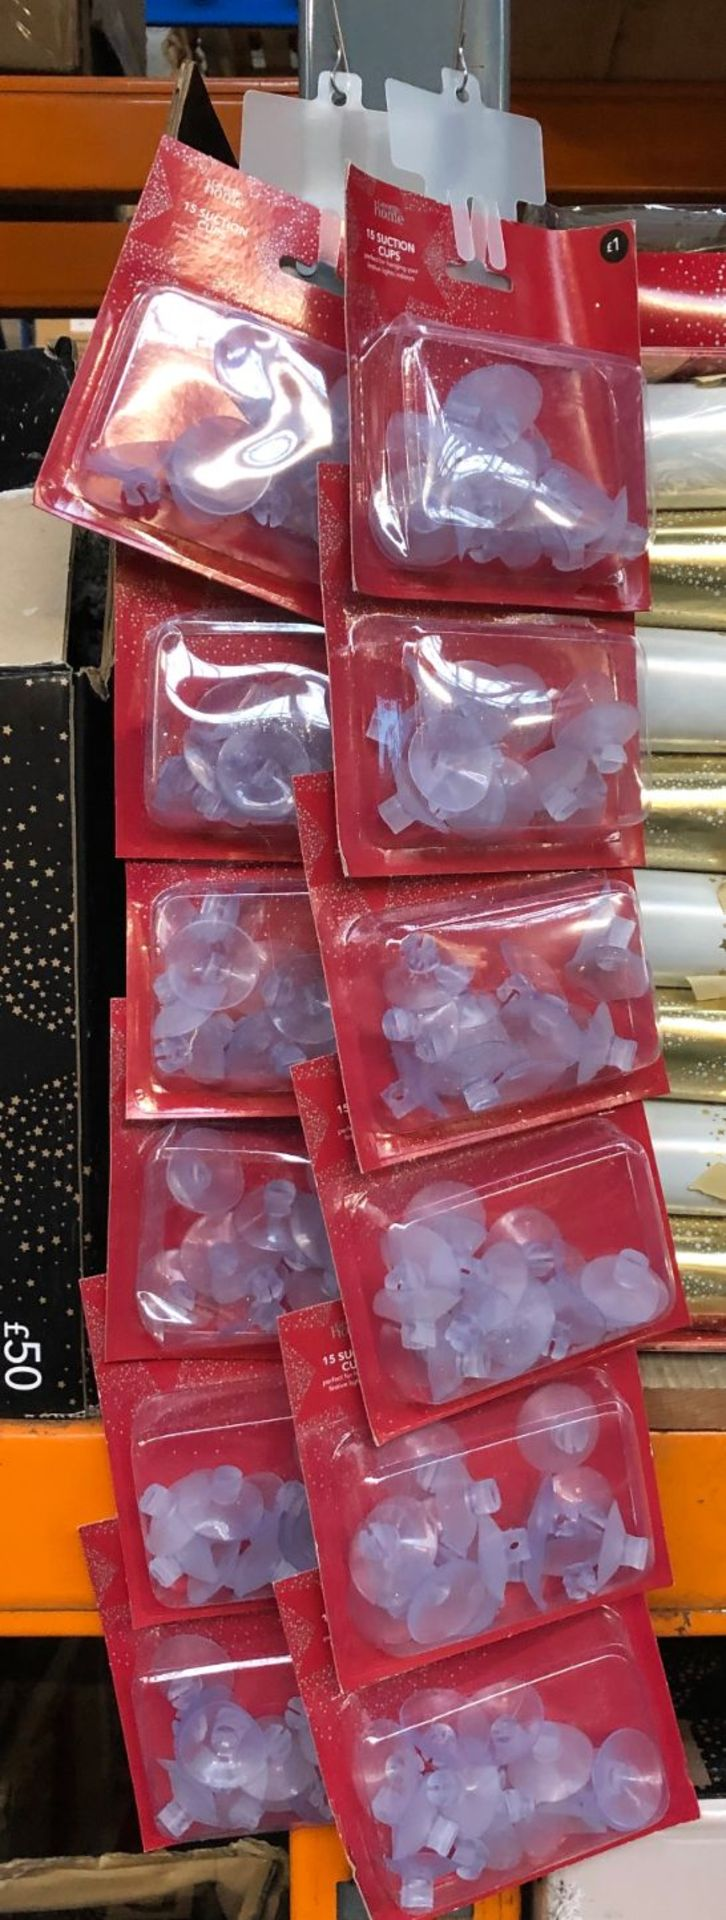 12 X PACKS OF SUCTION CUPS / AS NEW (IMAGES ARE FOR ILLUSTRATION PURPOSES ONLY - WE DO NOT TEST